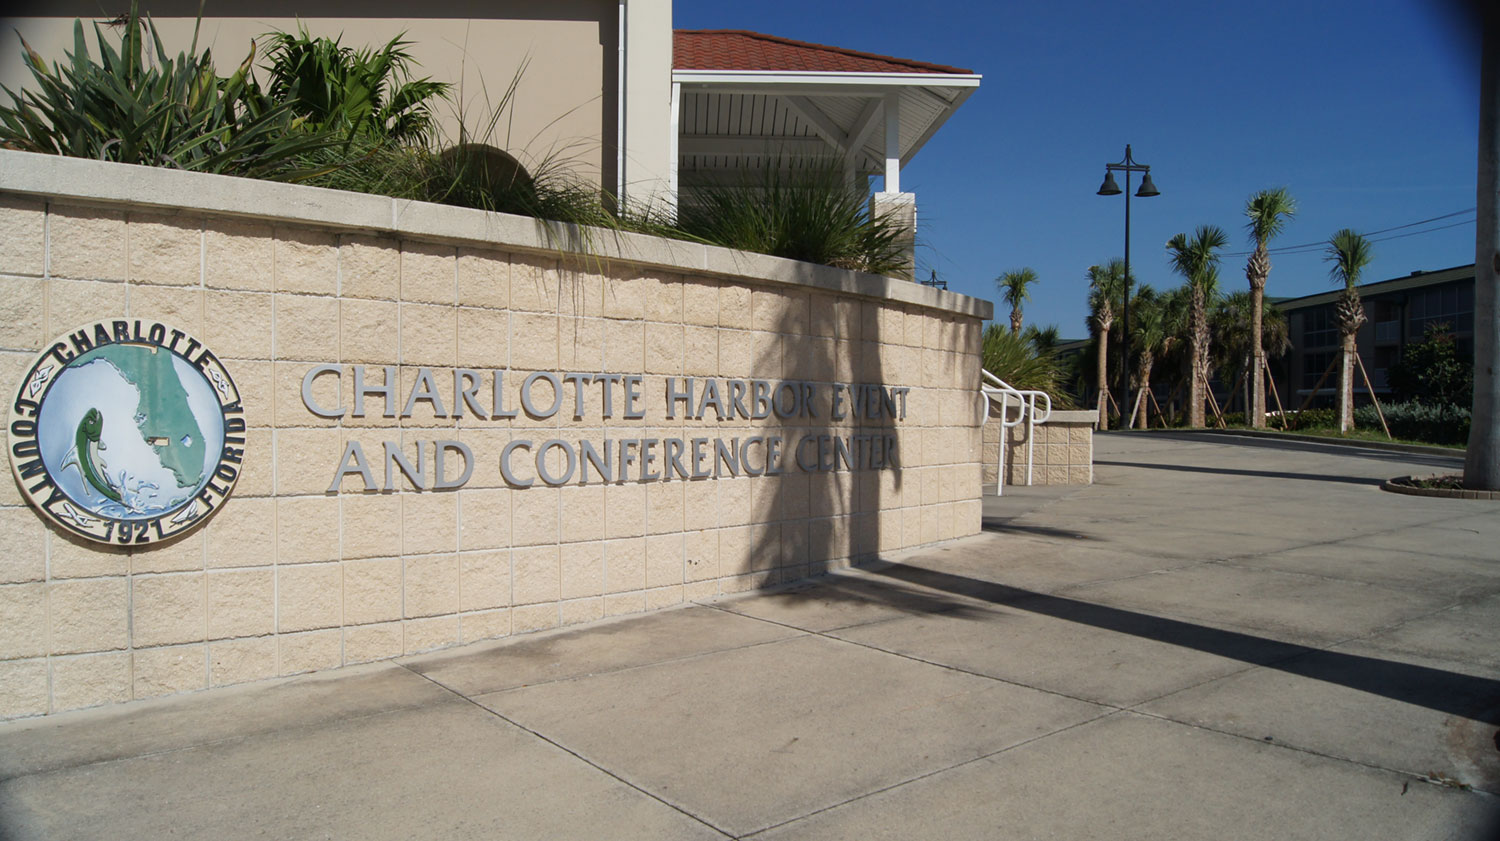 Punta Gorda Charlotte Harbor Event and Conference Center